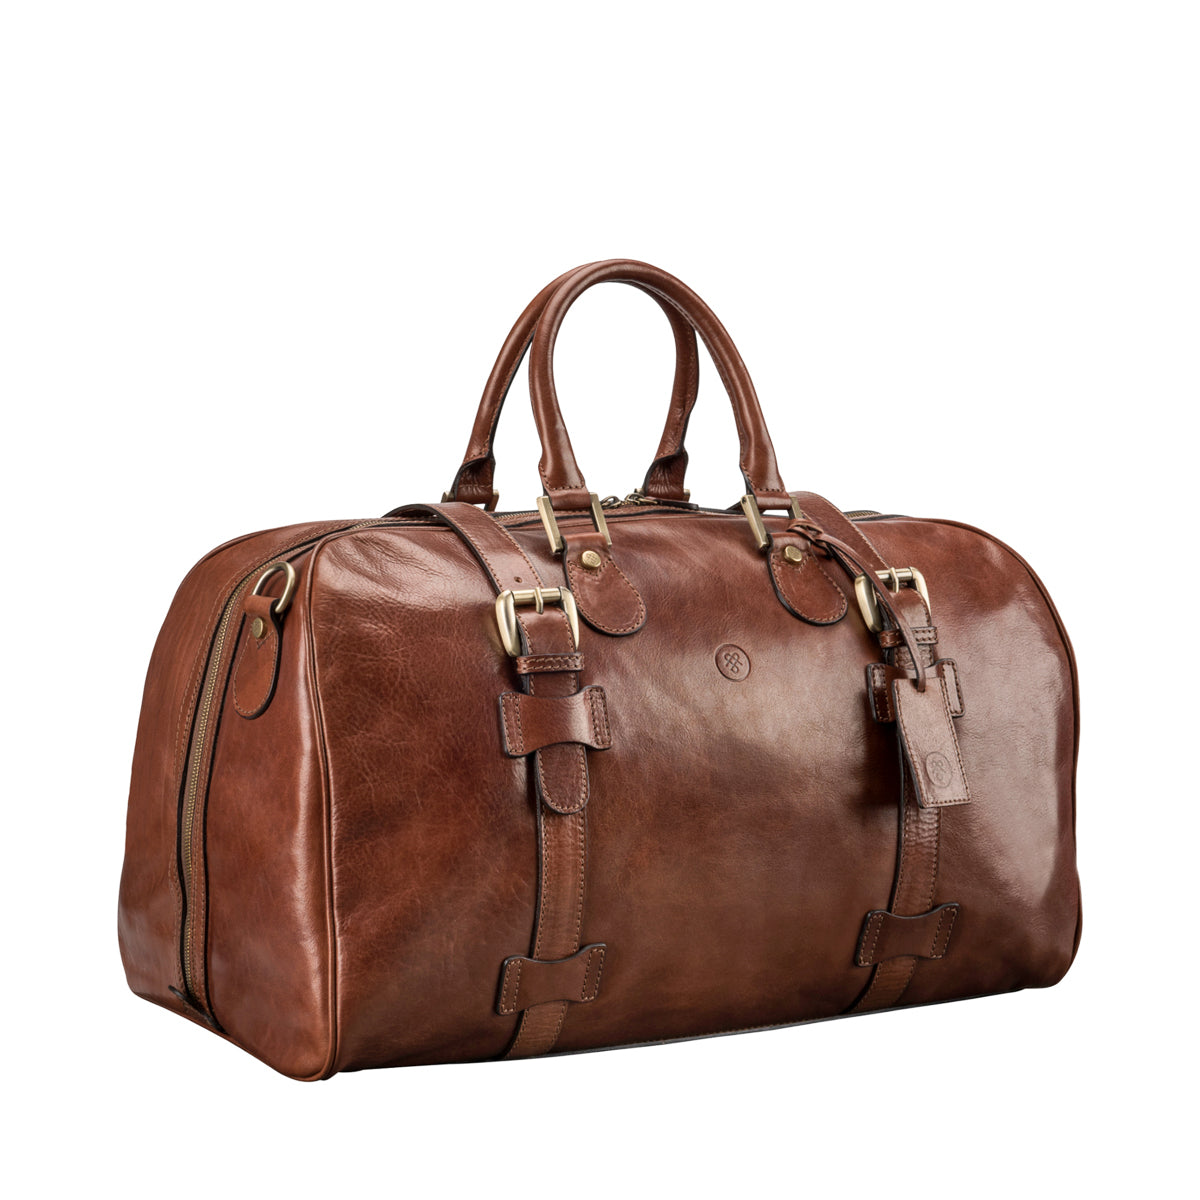 Image 2 of the 'Flero' Chestnut Veg-Tanned Leather Holdall